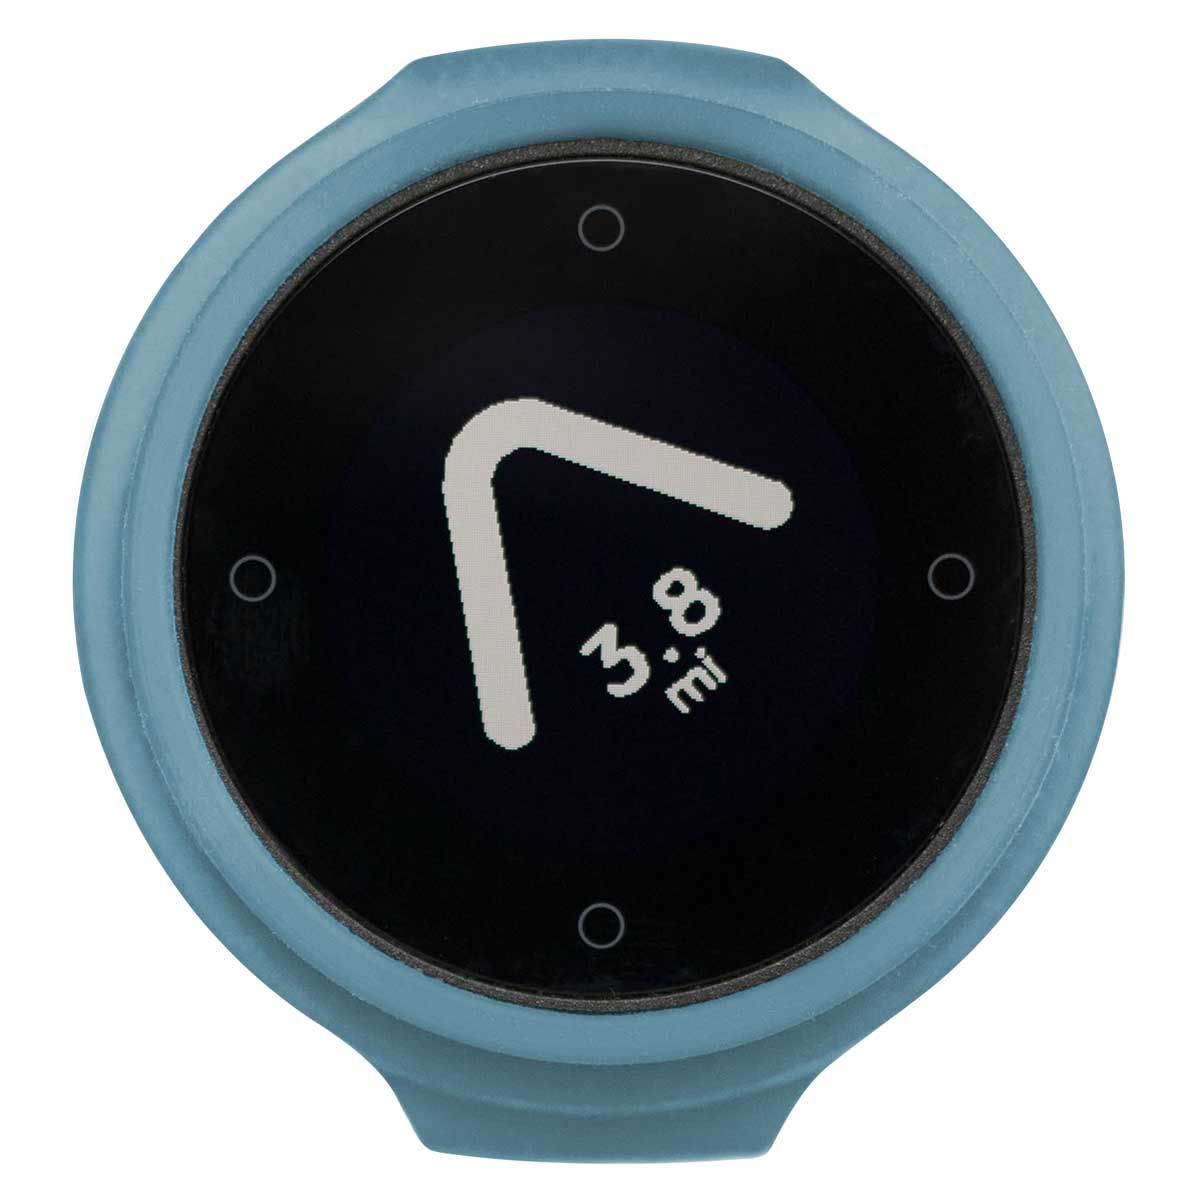 Image of Boussole Beeline Smart Navigation (avec Ride Tracking) - Petrol Blue